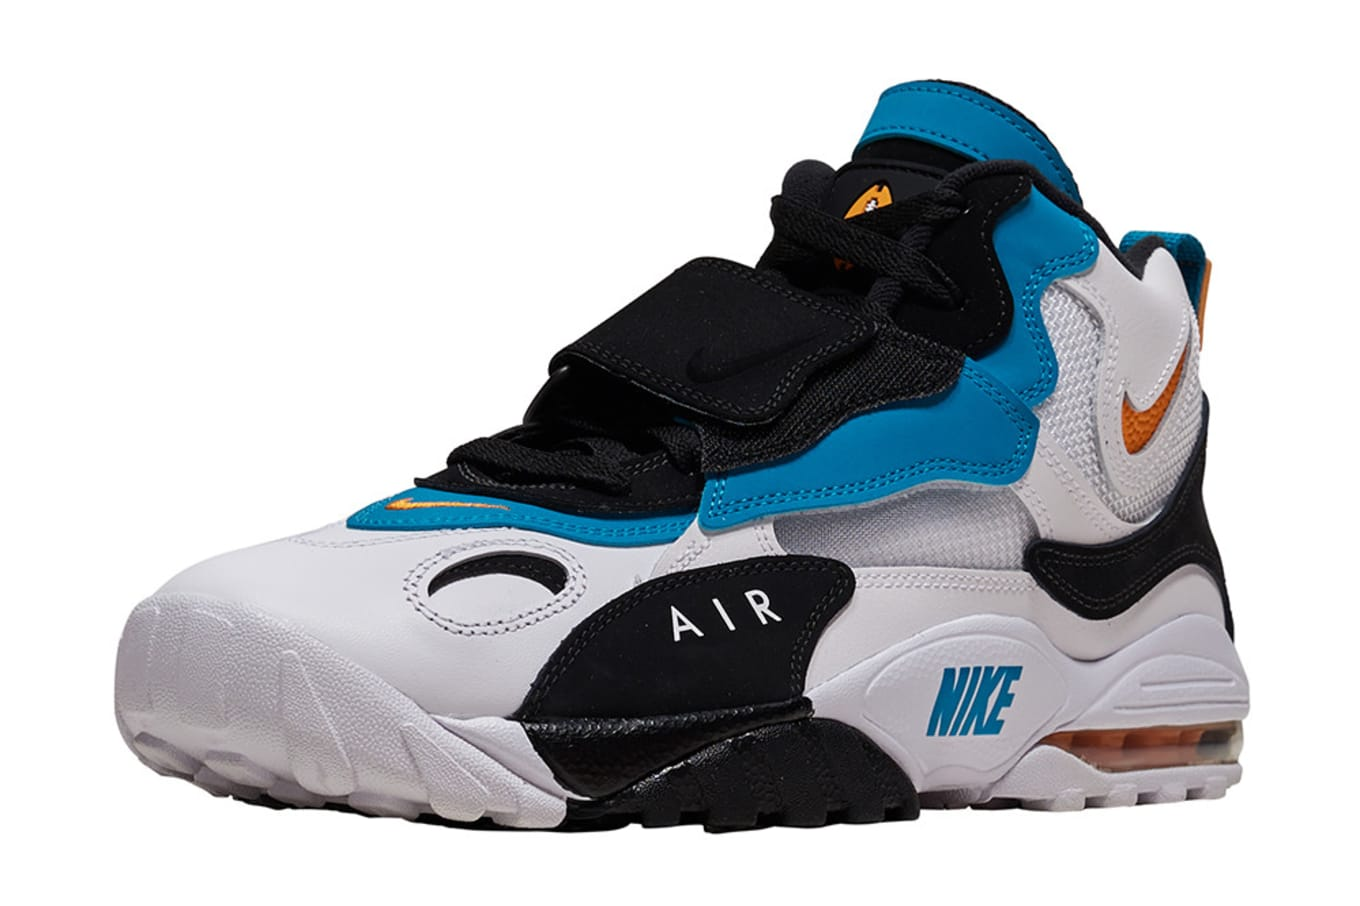 online retailer 3b33e 6f1c3 Nike Air Max Speed Turf 'Dan Marino' 525225-100 Available Now | Sole ...